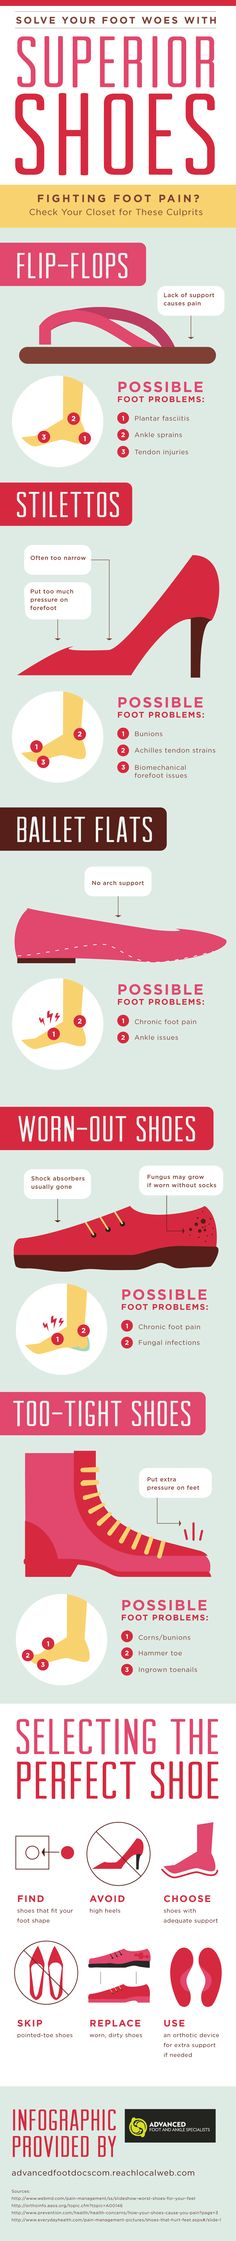 Solve Your Foot Woes with Superior Shoes #infographic